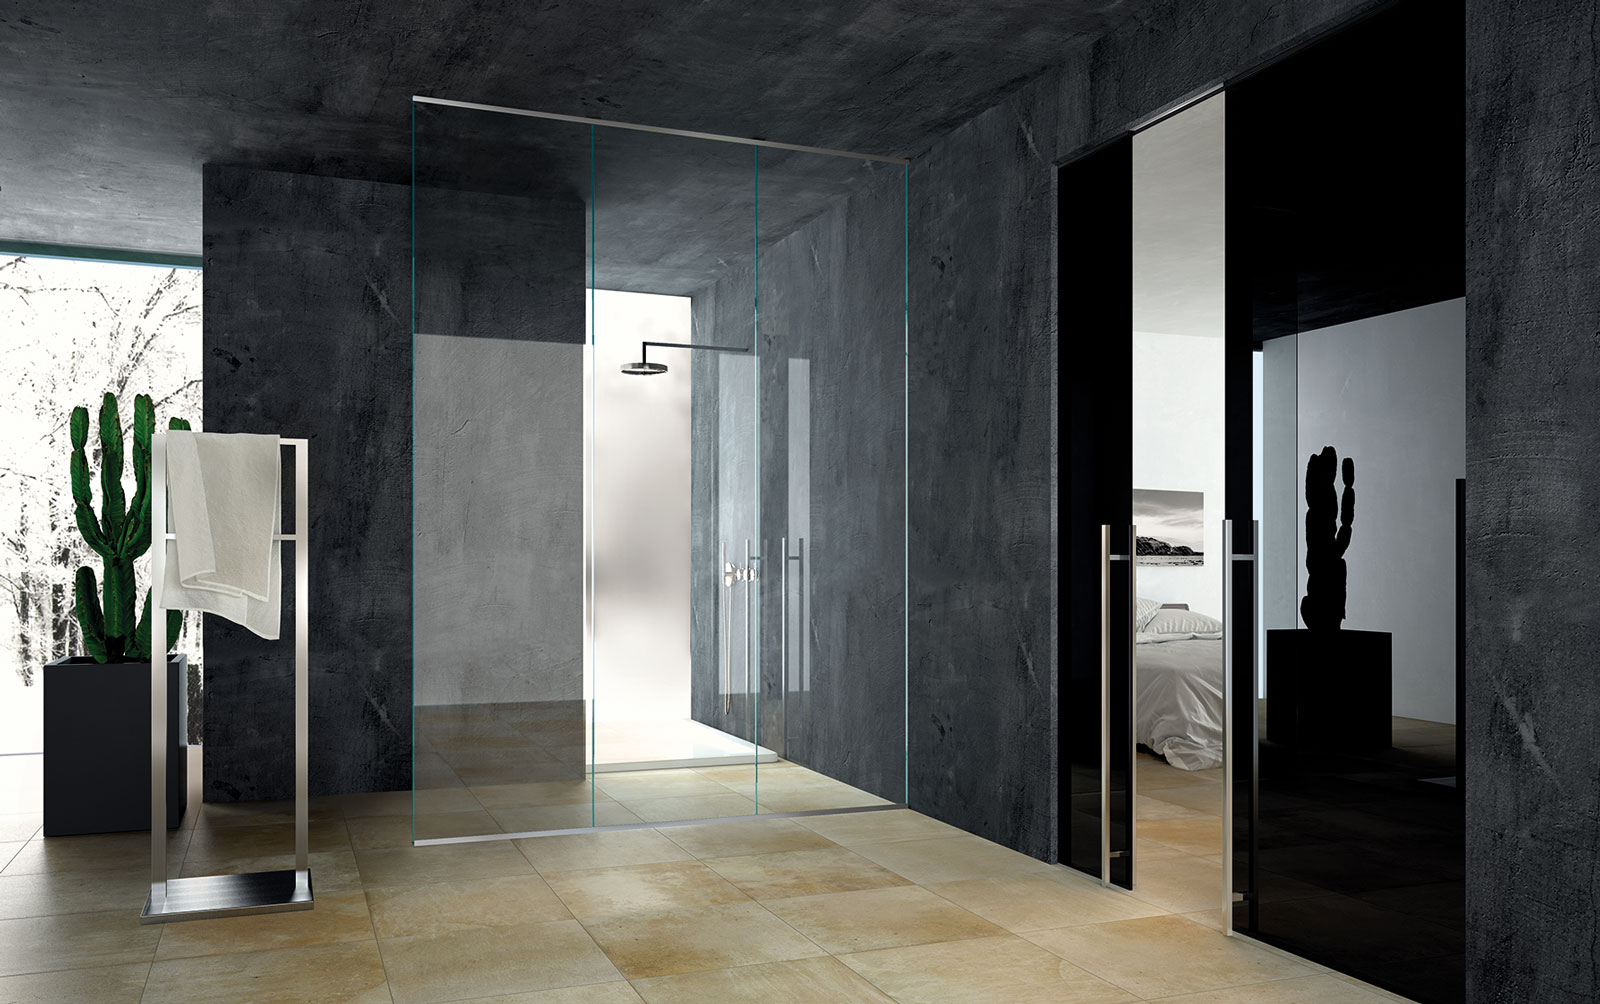 Double Disappearing Sliding Doors, Black Lacquered Glass, Set Up For Metal  Frame Without Jamb; Fixed Glass To Create The Shower Space